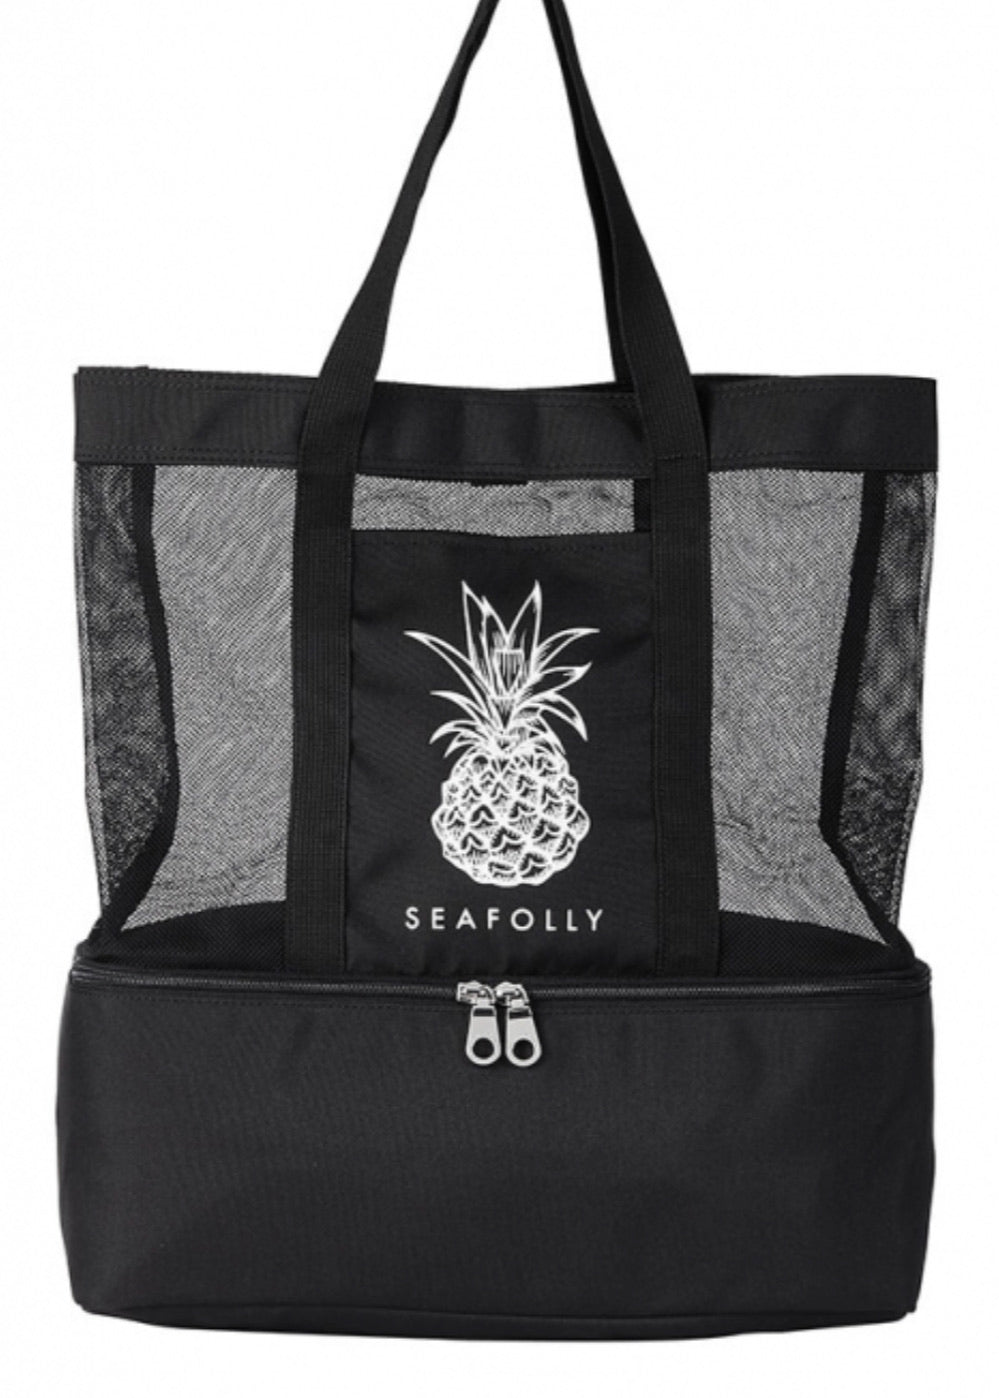 Seafolly Tote Cooler Bag